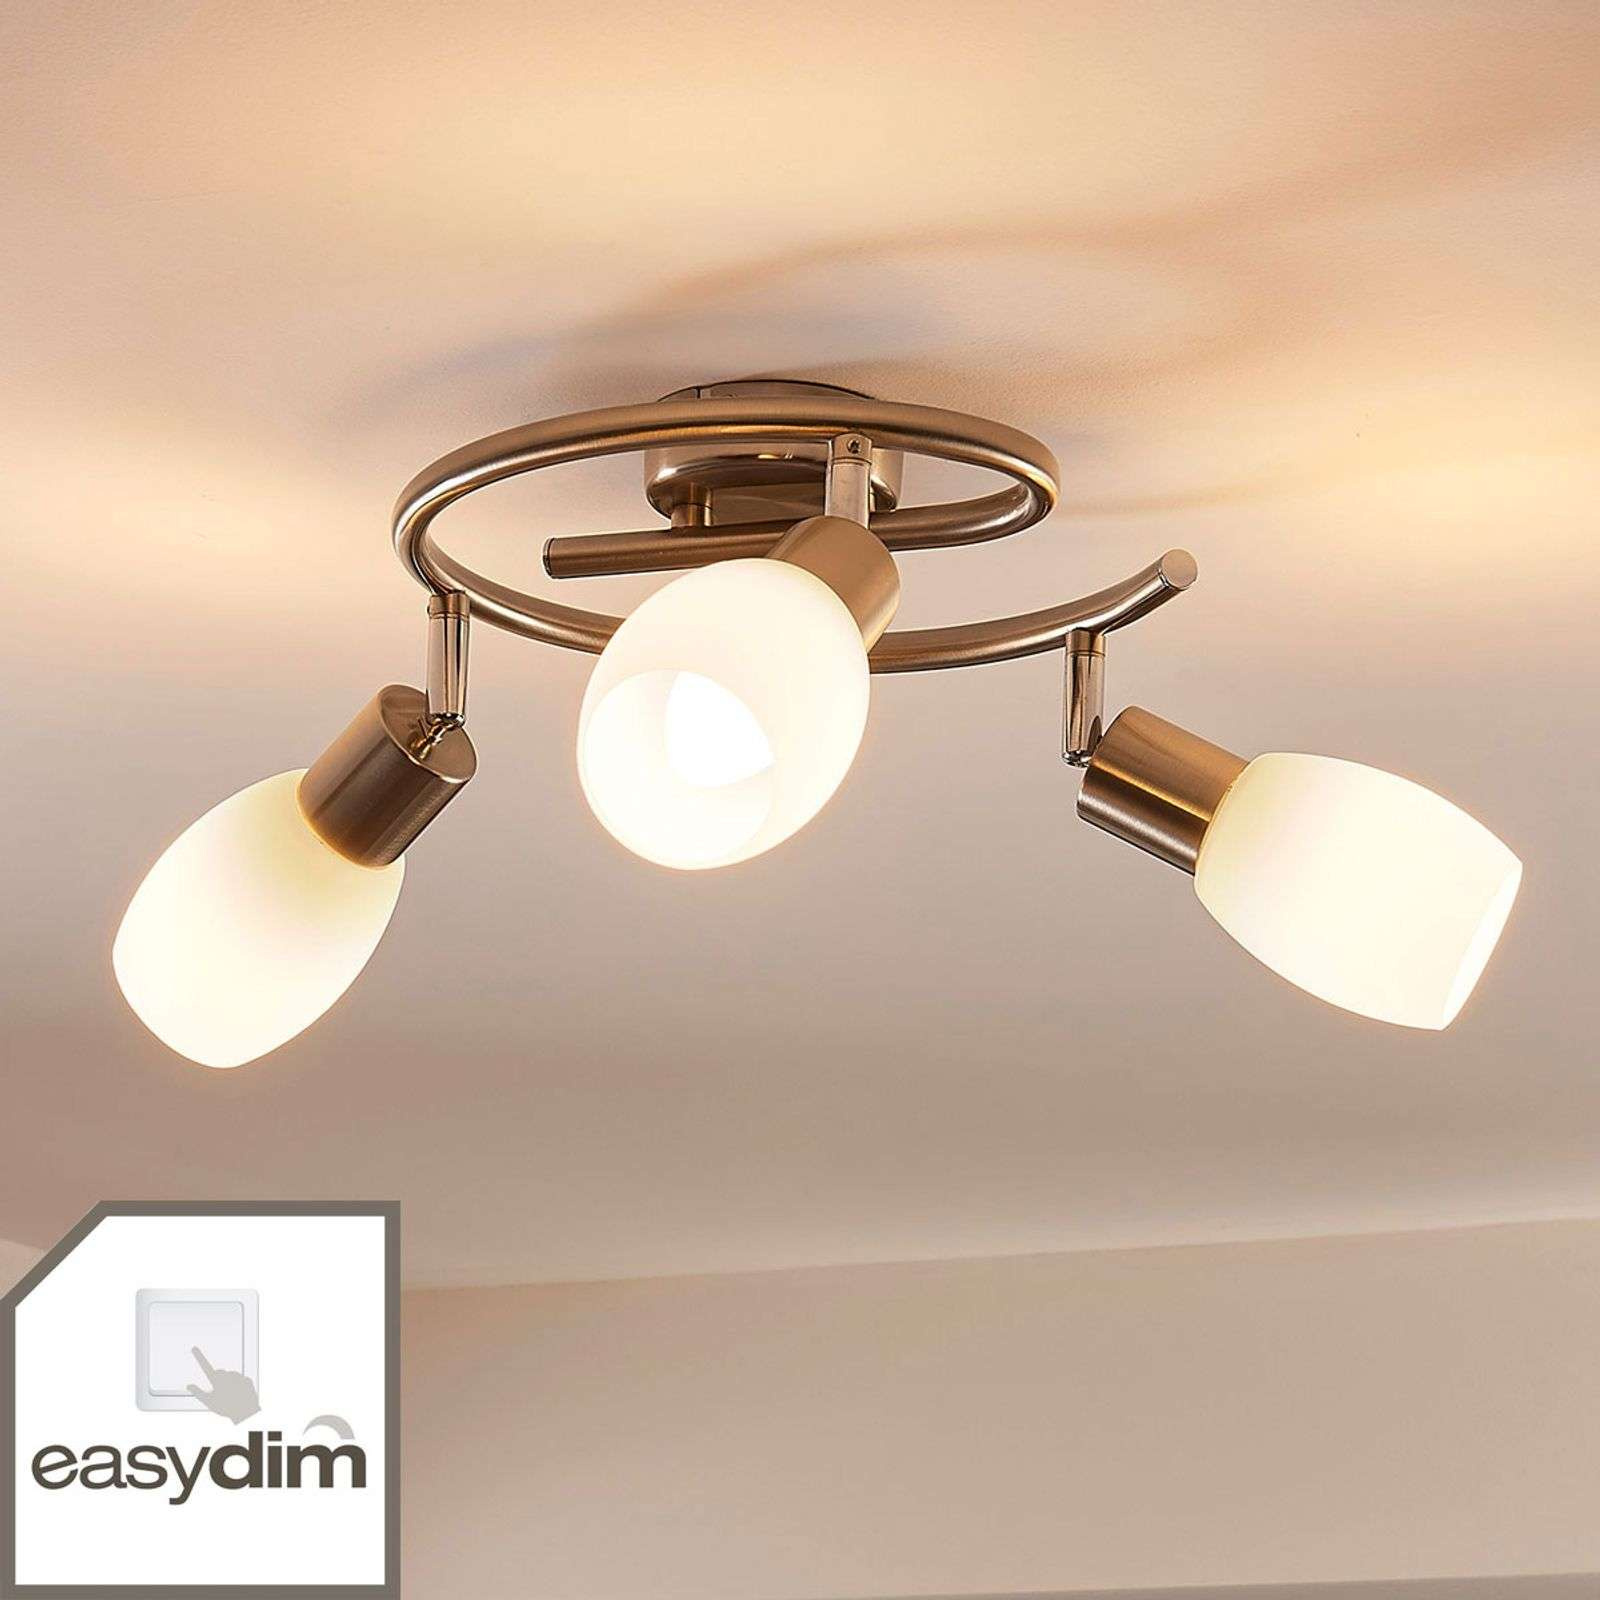 Plafonnier rond LED Easydim Arda à 3 lampes